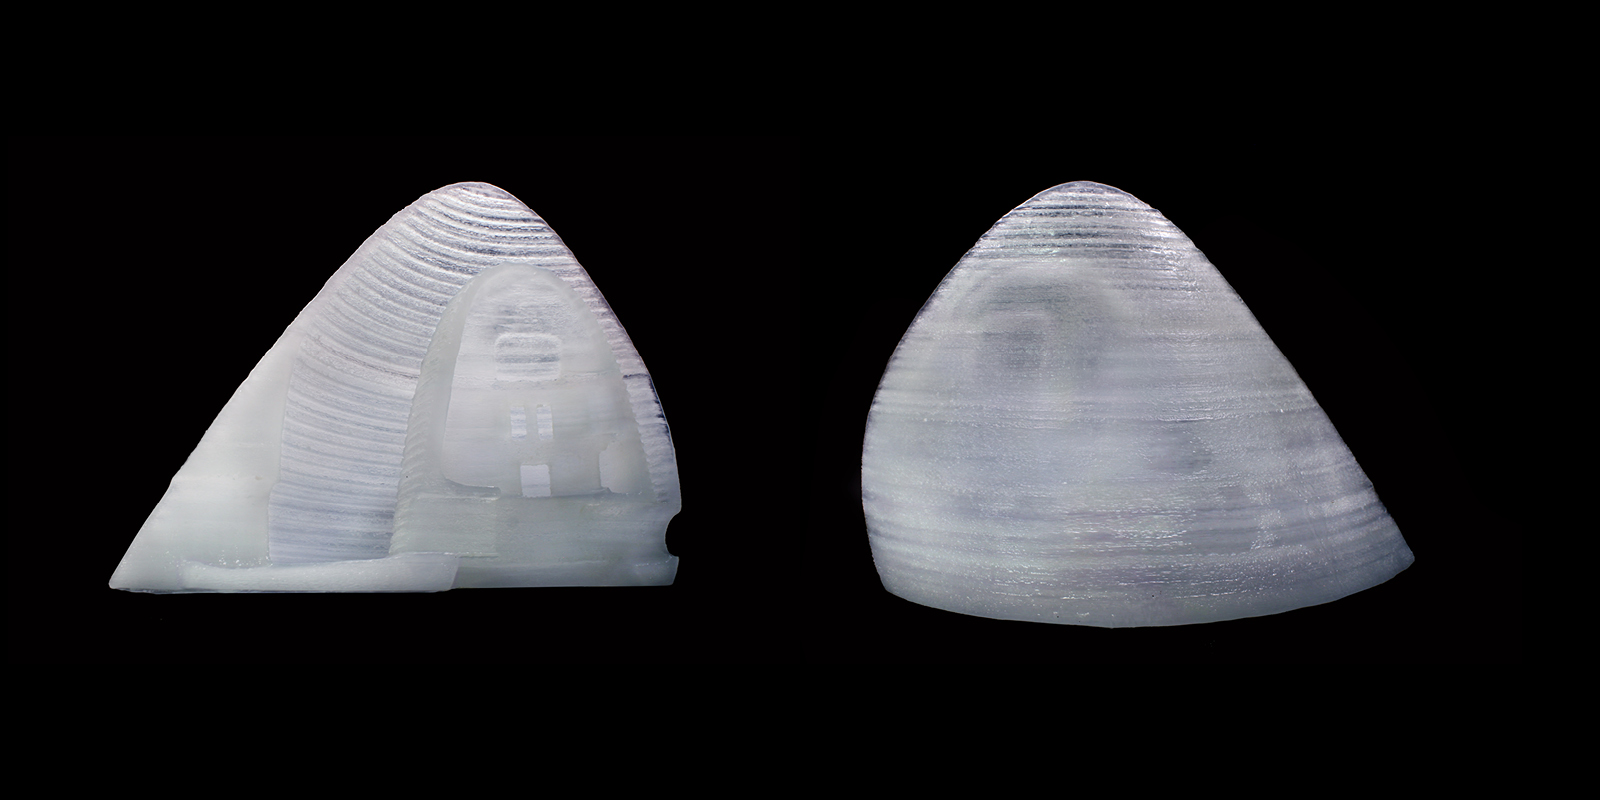 Ice shell prototypes, created in collaboration with McGill University